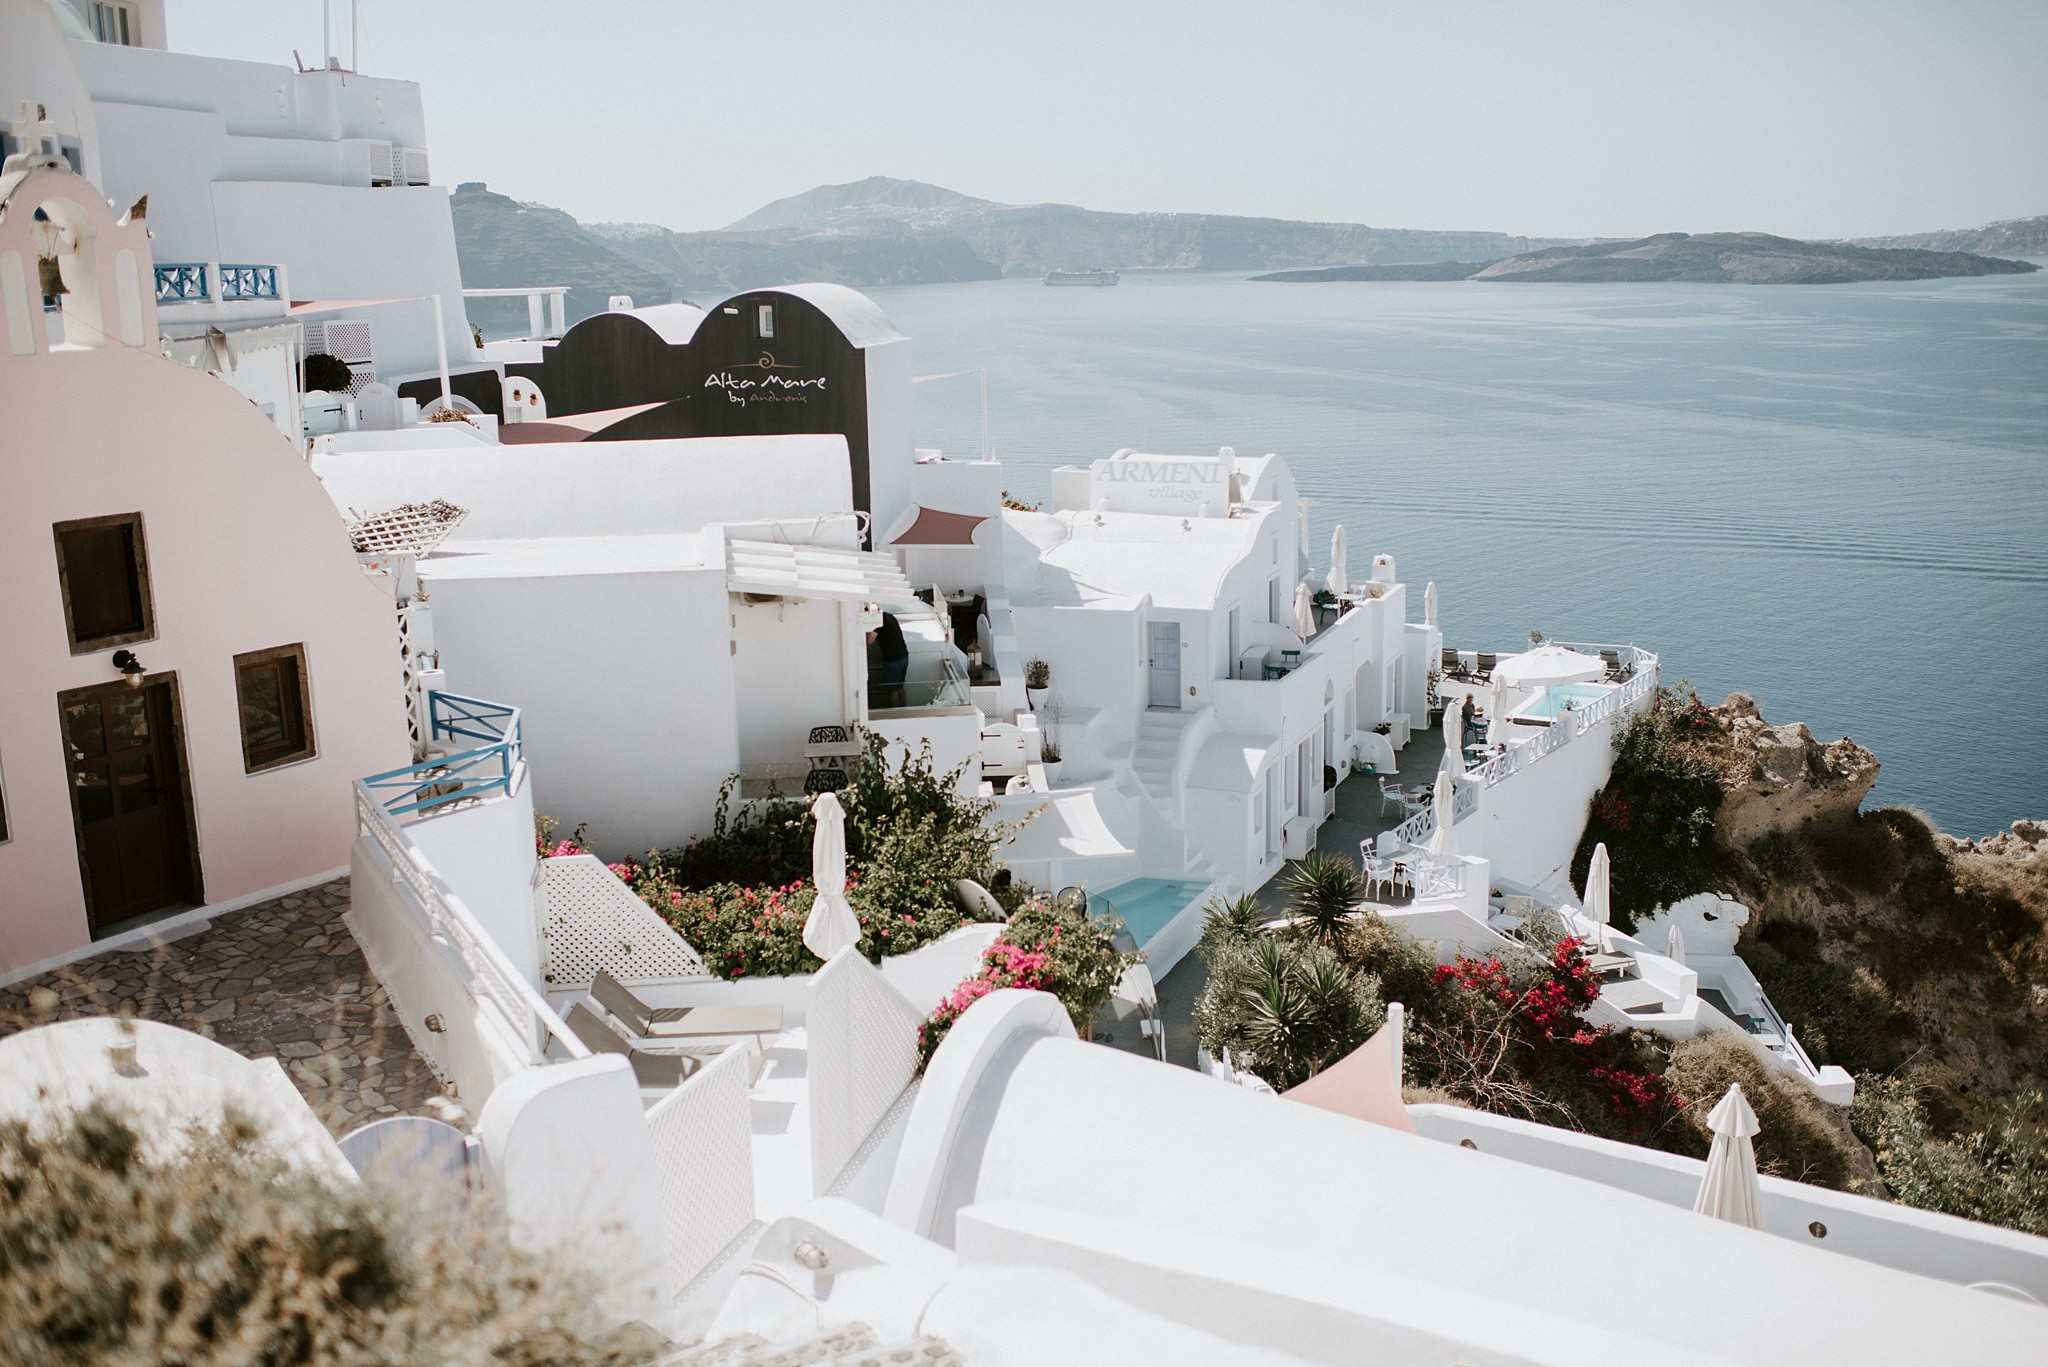 Santorini Greece Travel Tips by Kristen Kaiser Photography